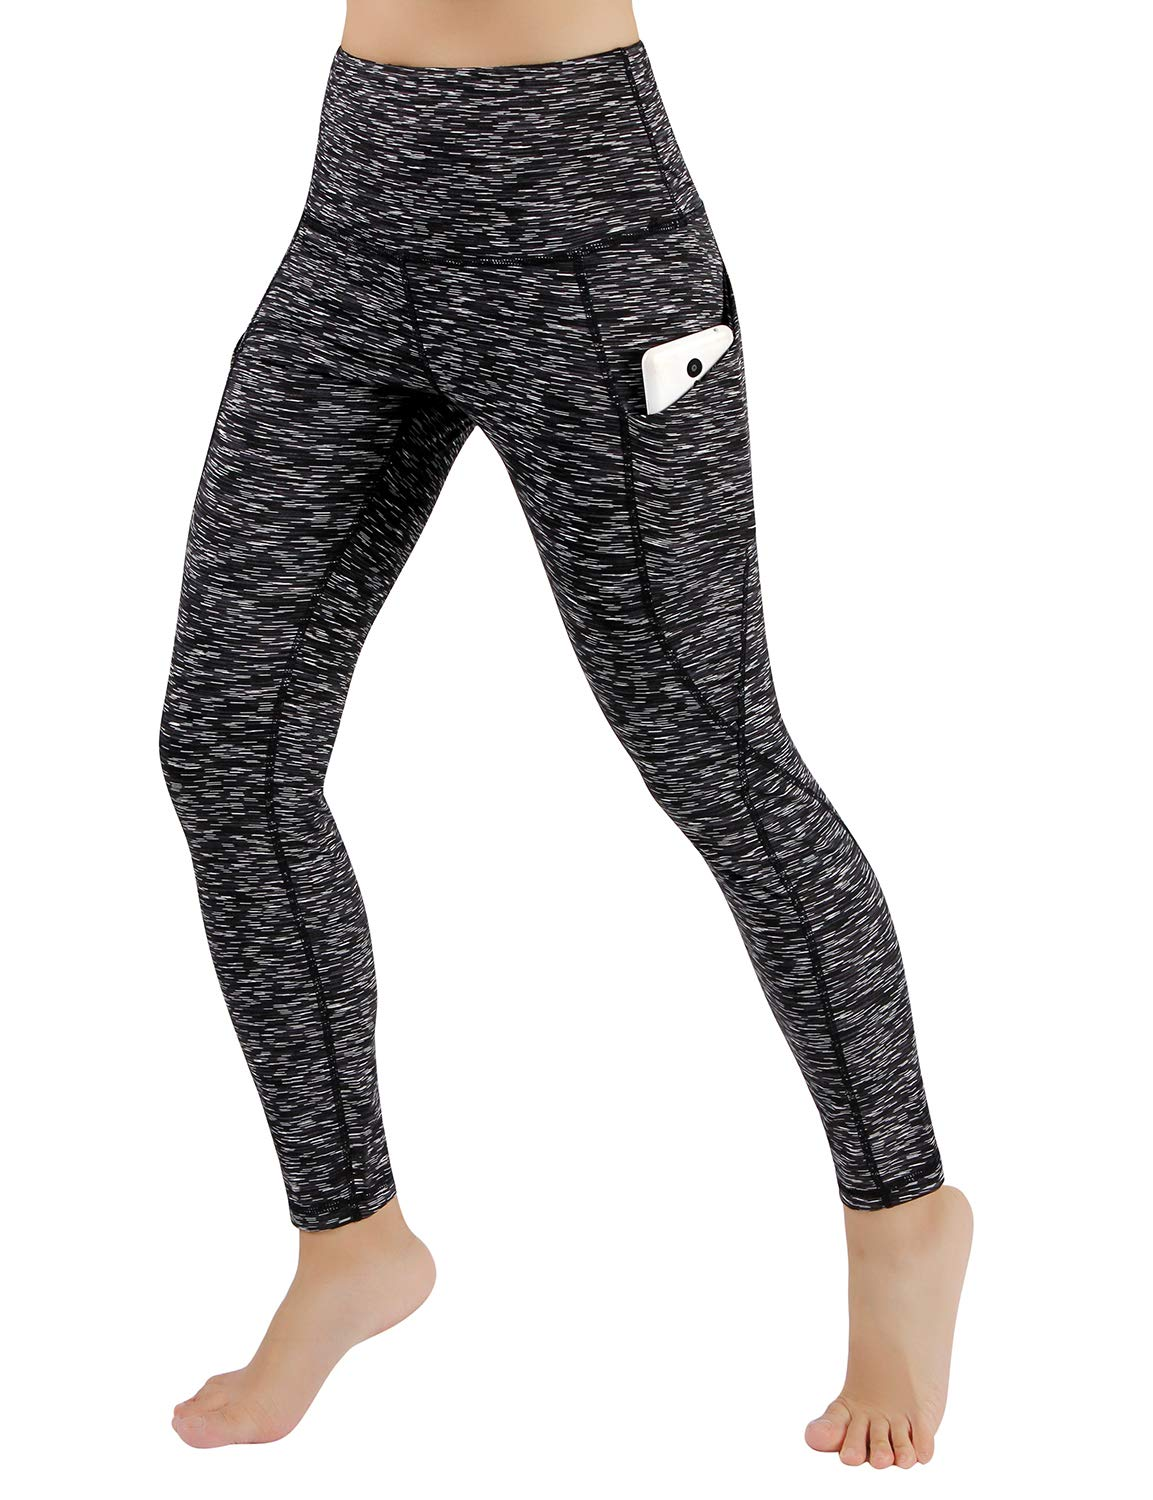 ODODOS Women's High Waist Yoga Pants with Pockets,Tummy Control,Workout Pants Running 4 Way Stretch Yoga Leggings with Pockets,SpaceDyeMattBlack,Large by ODODOS